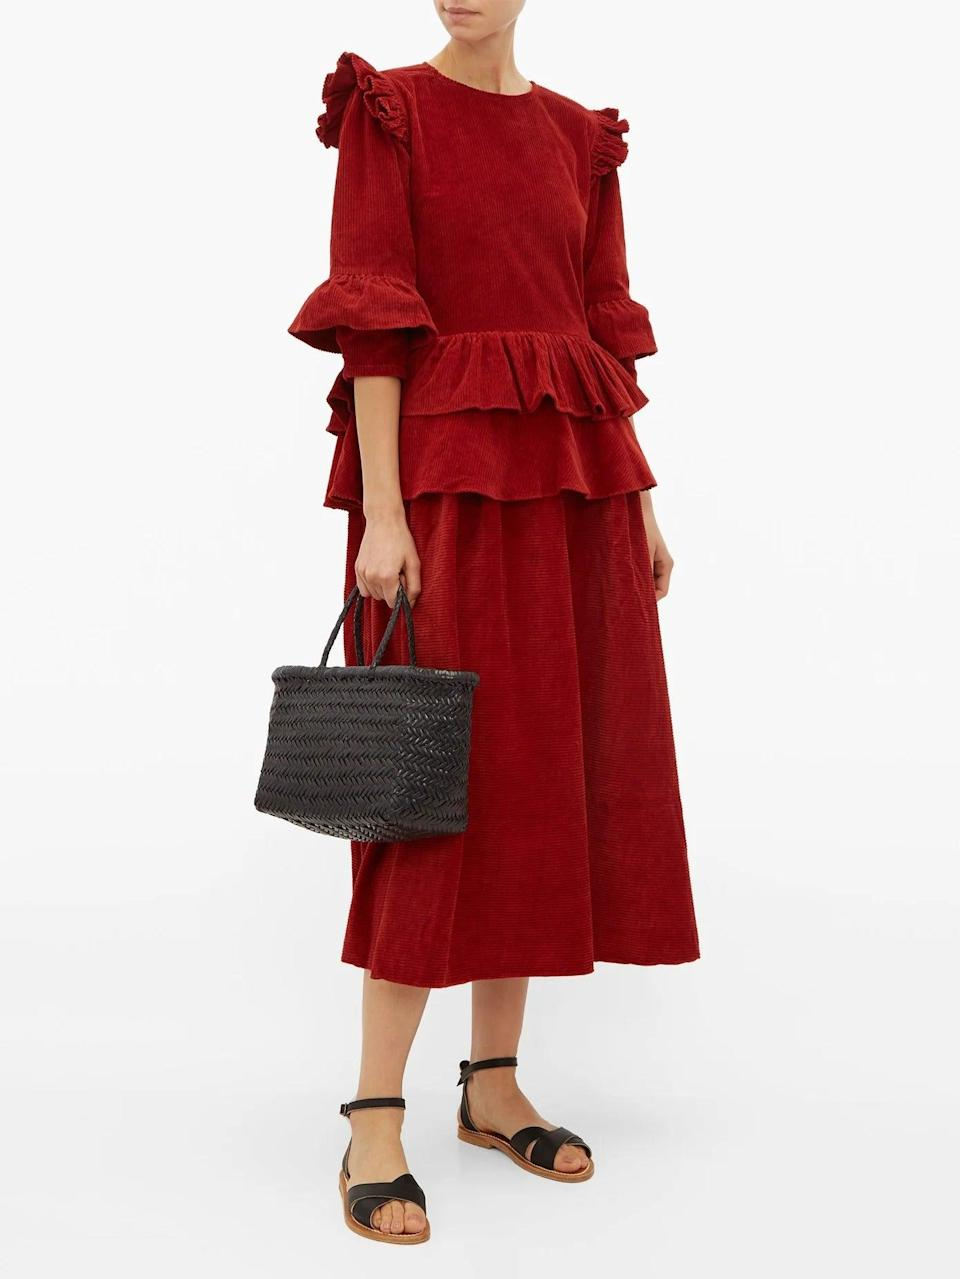 """<br><br><strong>Story MFG</strong> Tulsi Ruffled Cotton Corduroy Midi Dress, $, available at <a href=""""https://www.matchesfashion.com/products/Story-MFG-Tulsi-ruffled-cotton-corduroy-midi-dress-1308069"""" rel=""""nofollow noopener"""" target=""""_blank"""" data-ylk=""""slk:MatchesFashion.com"""" class=""""link rapid-noclick-resp"""">MatchesFashion.com</a>"""